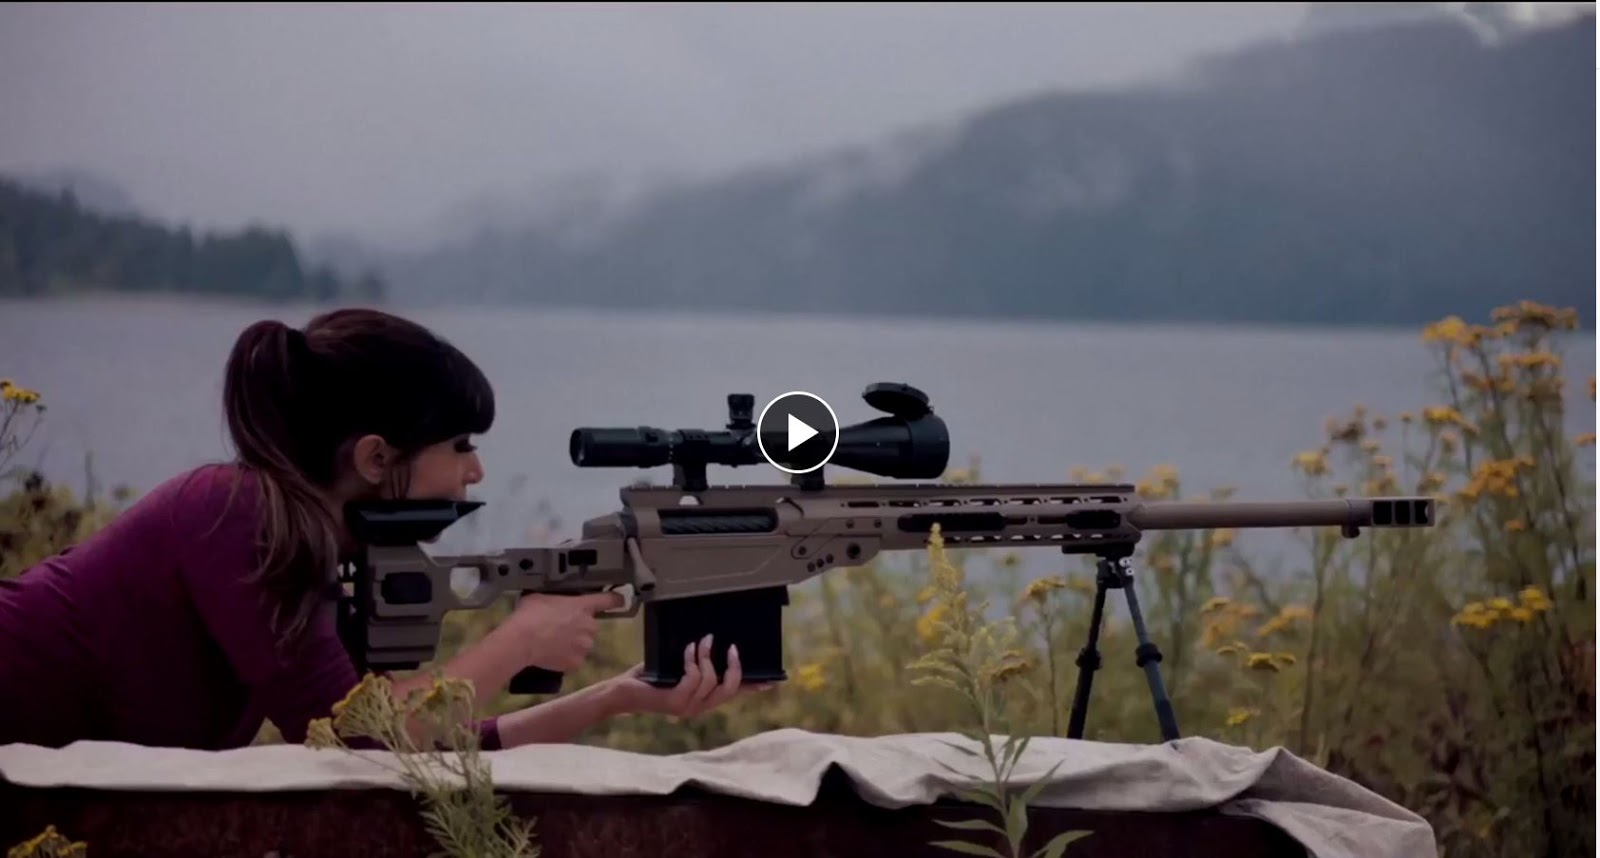 Mister Donut's Firearms Blog: Cadex chassis for 50 BMG